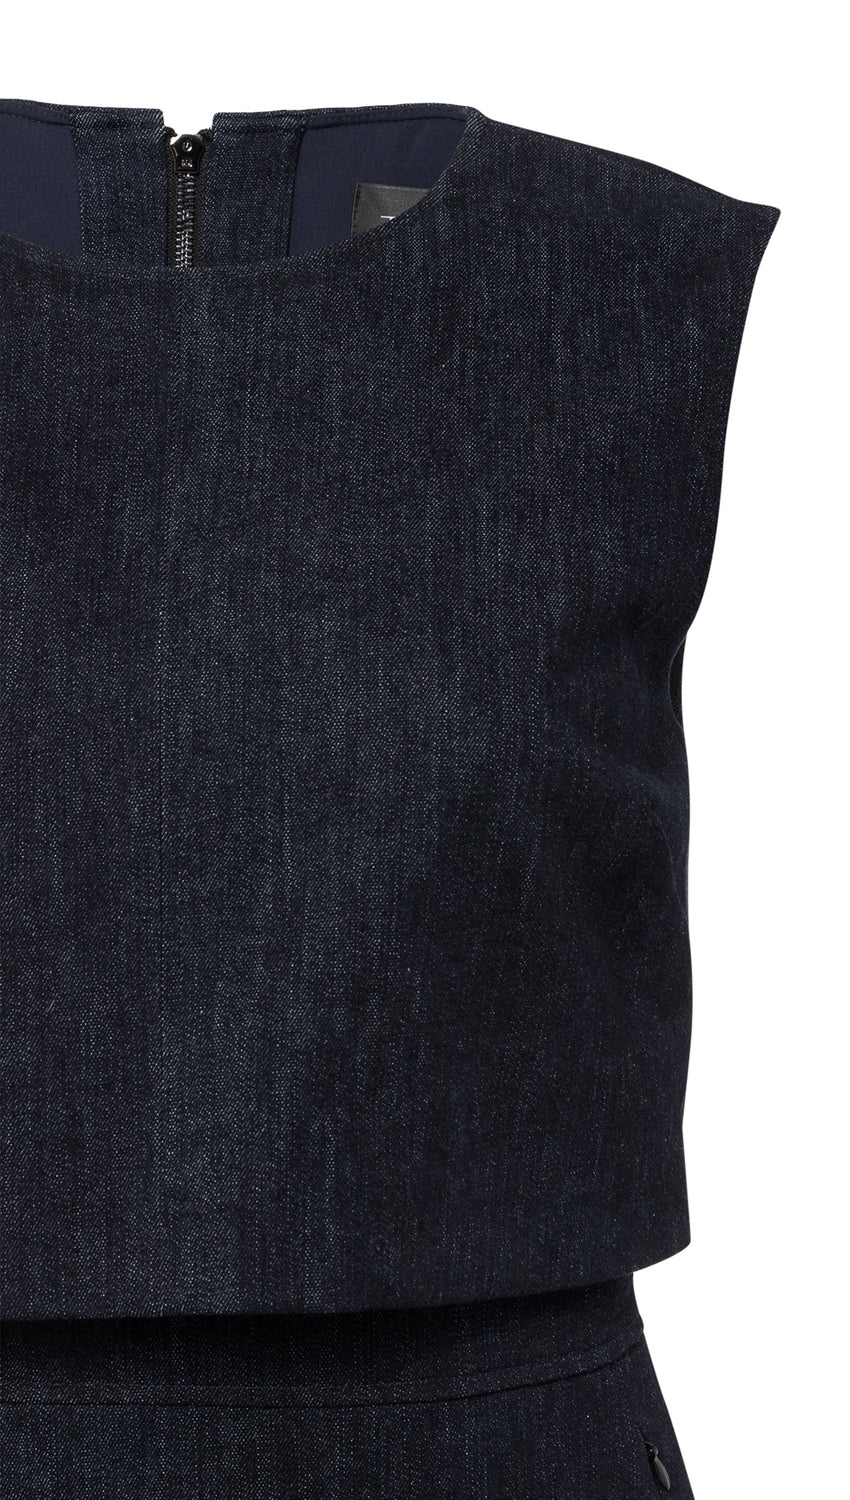 Overlay Sheath in Denim